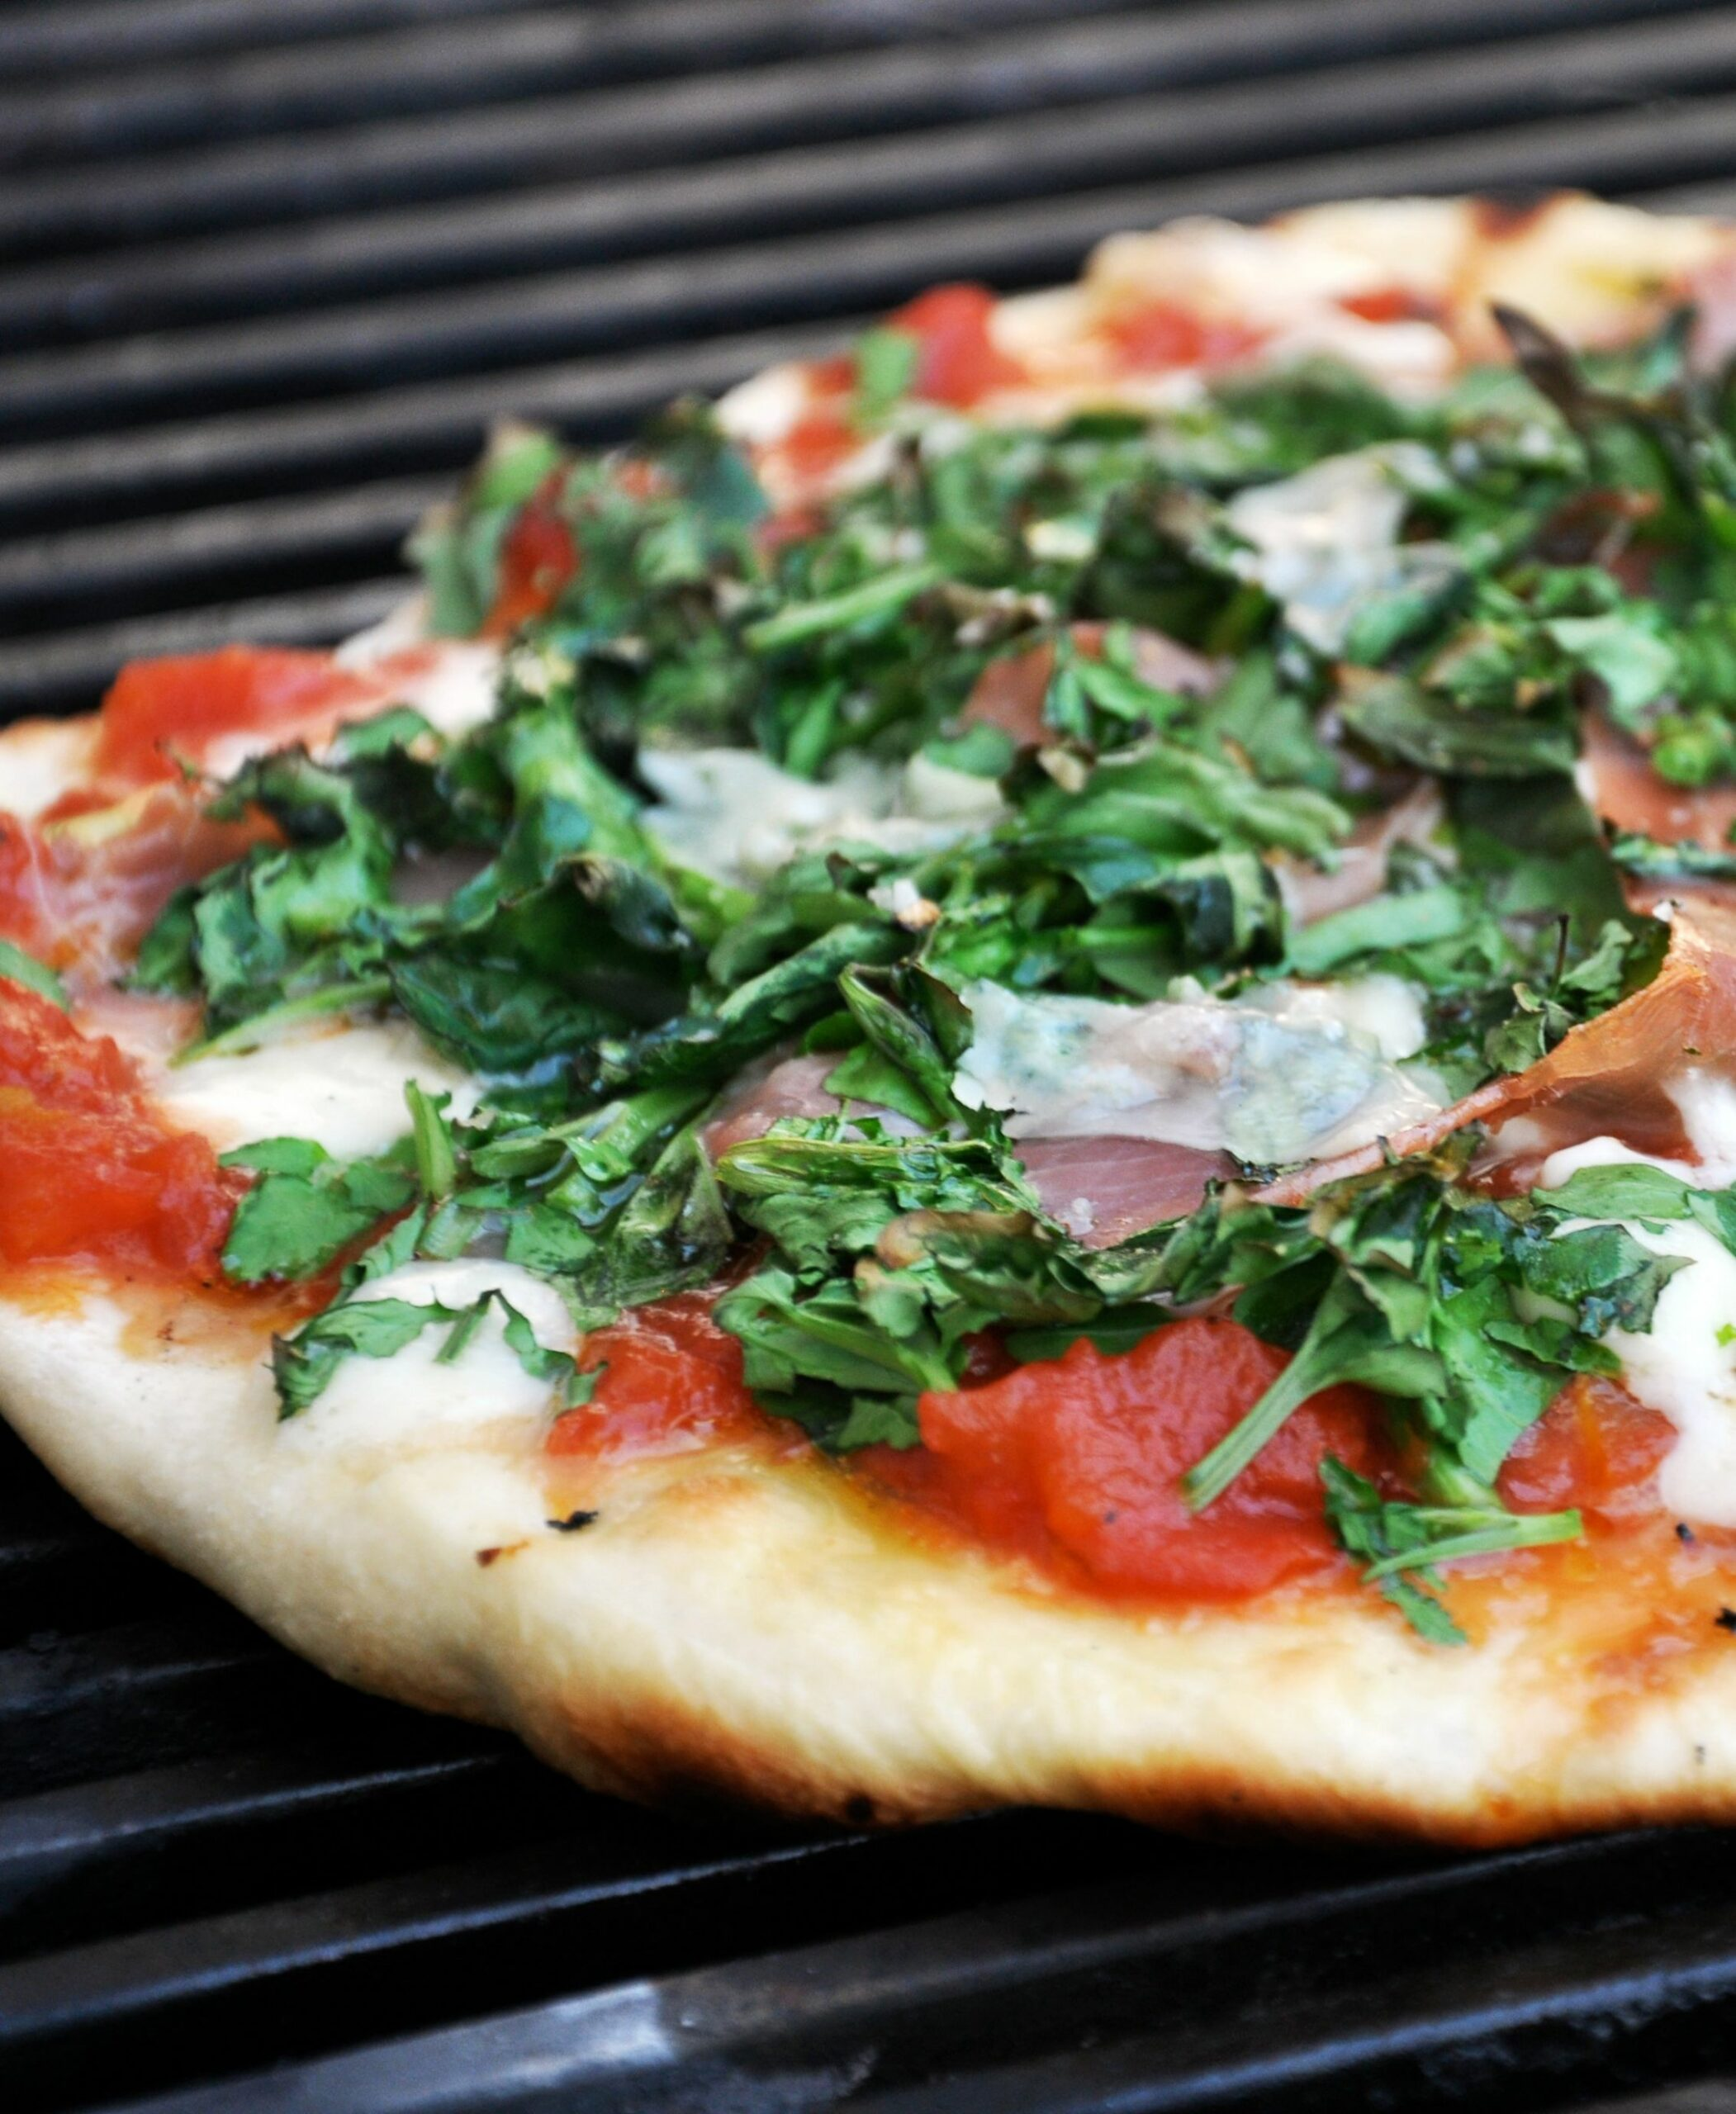 How To Make the Best Grilled Pizza - Recipes Pizza On The Grill